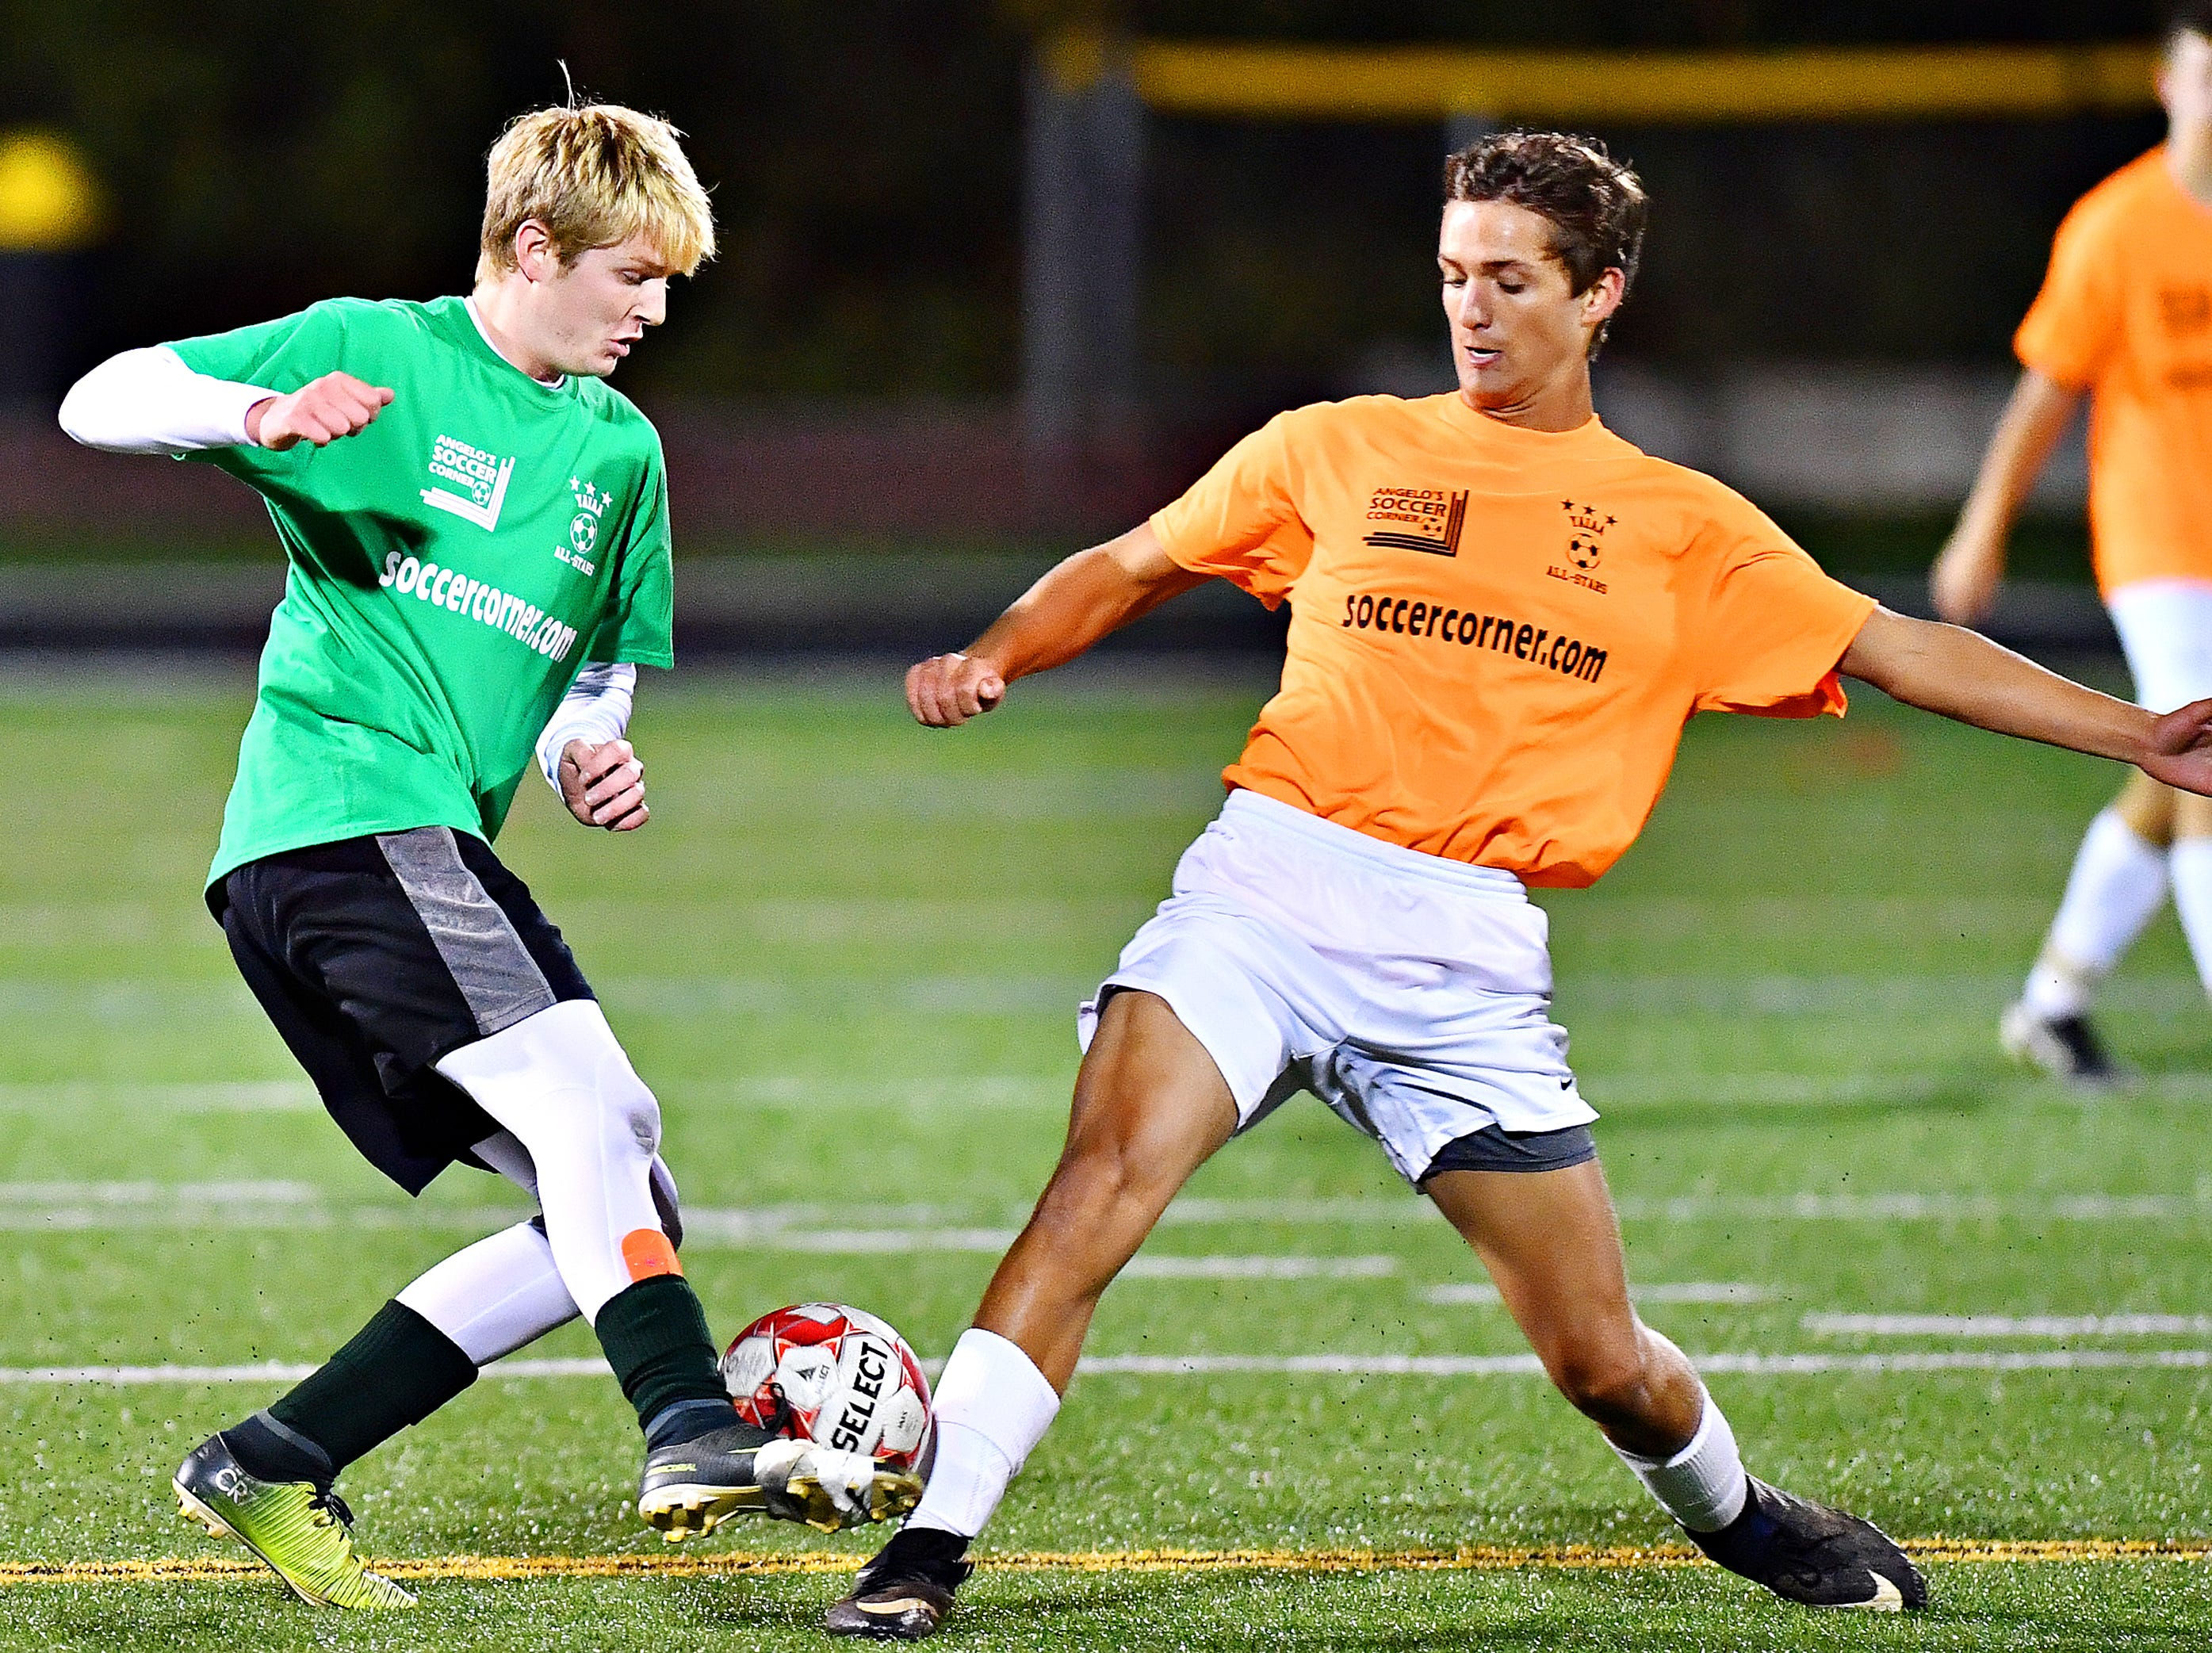 York Catholic's Bryan Bullen, left, and Bermudian Springs' Cole King battle for control of the ball during the YAIAA Boys' Soccer Senior All Star Game action at Horn Field in Red Lion, Wednesday, Nov. 7, 2018. Dawn J. Sagert photo